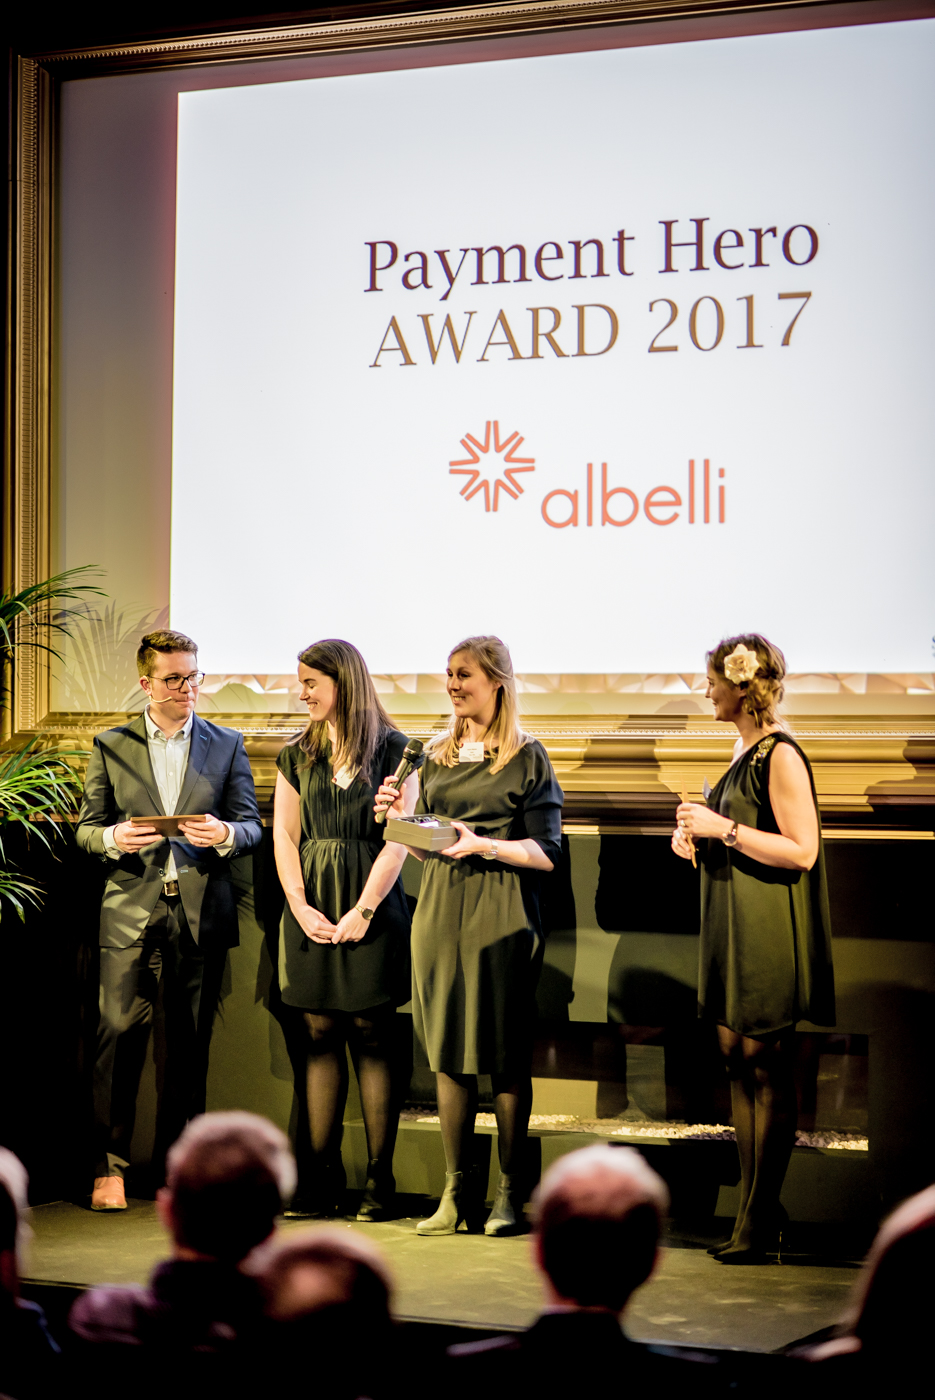 Albelli Winner of the Payment hero Award